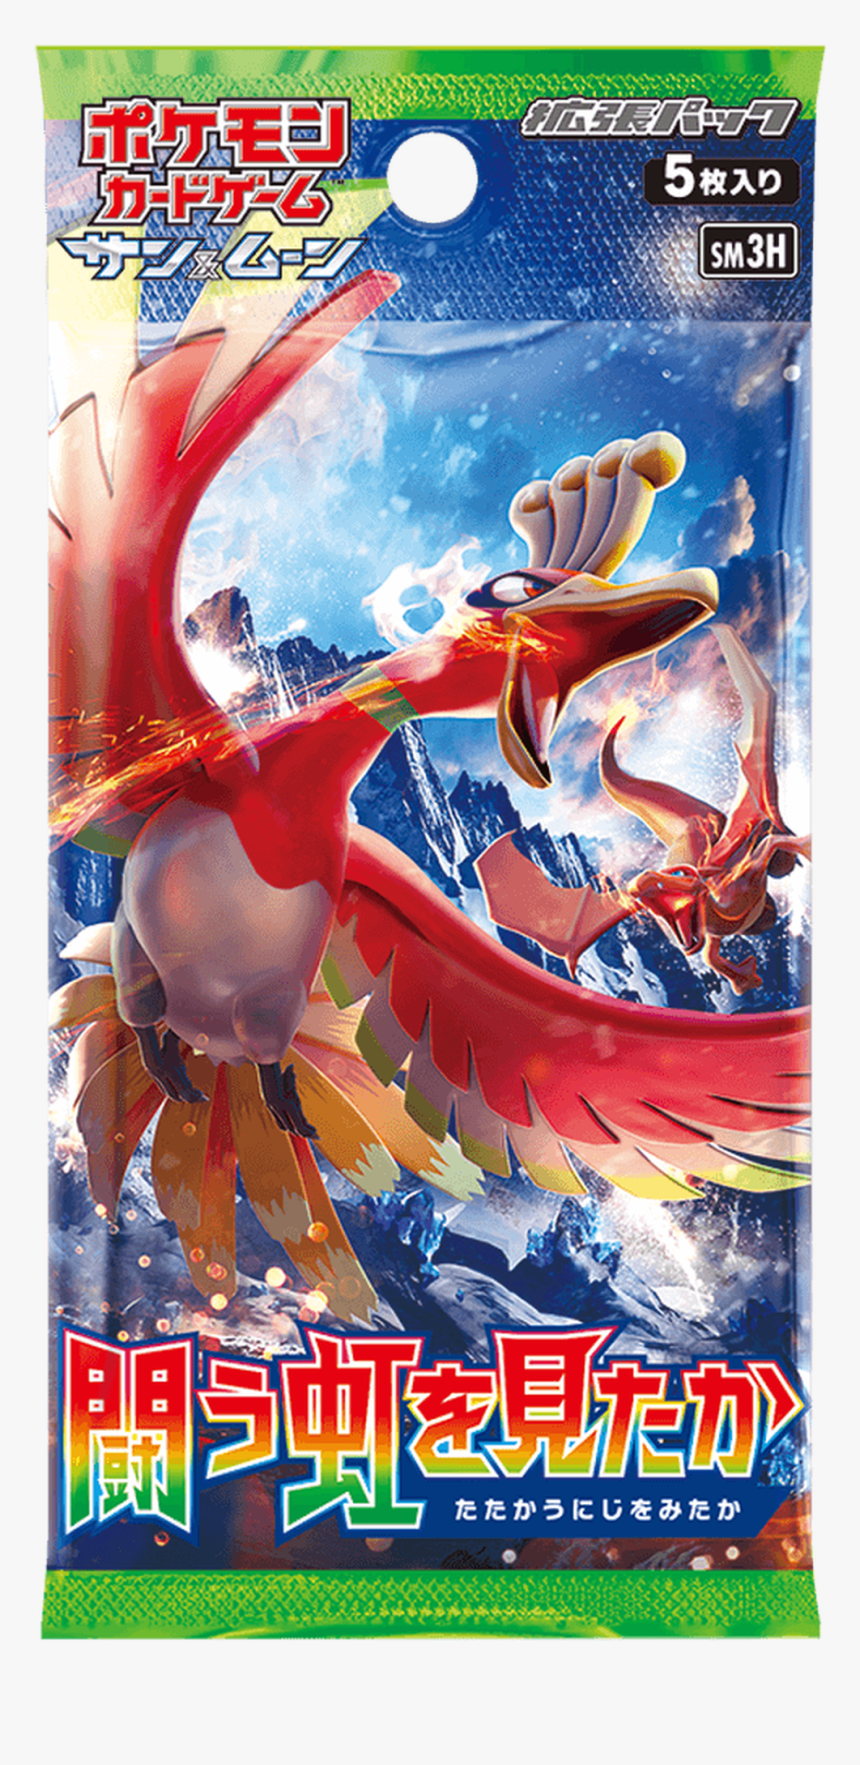 Pokemon Card Game Sm3h Sun & Moon To Have Seen The - Pokemon Booster Pack Japan, HD Png Download, Free Download